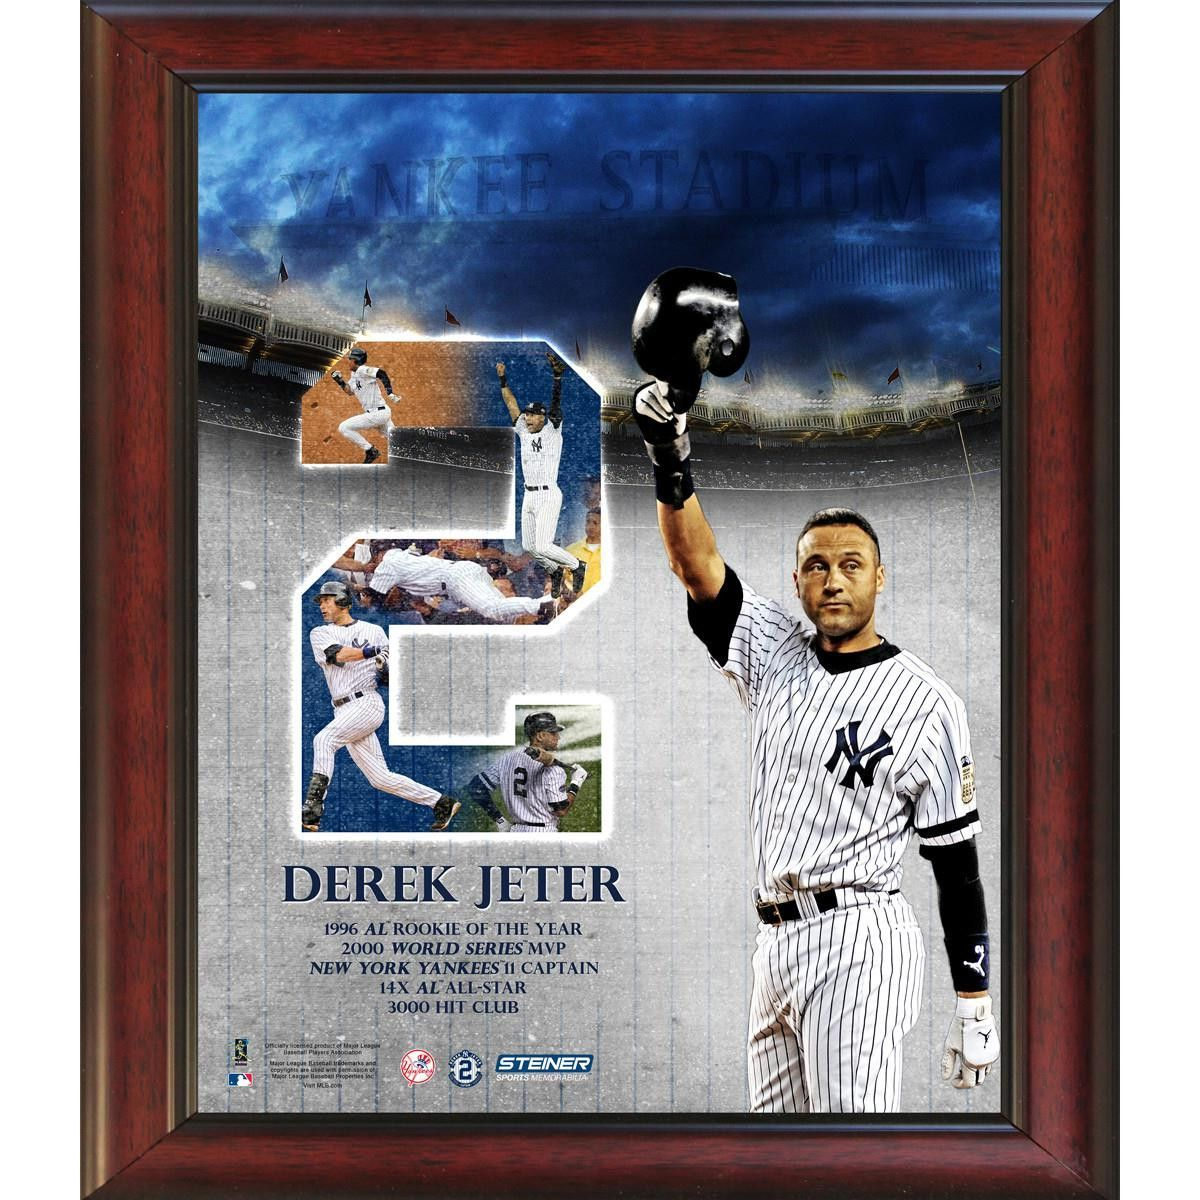 6d26c2c1c7f Derek Jeter 2 Career Highlight with Tipping Helmet Framed 11x14 Collage